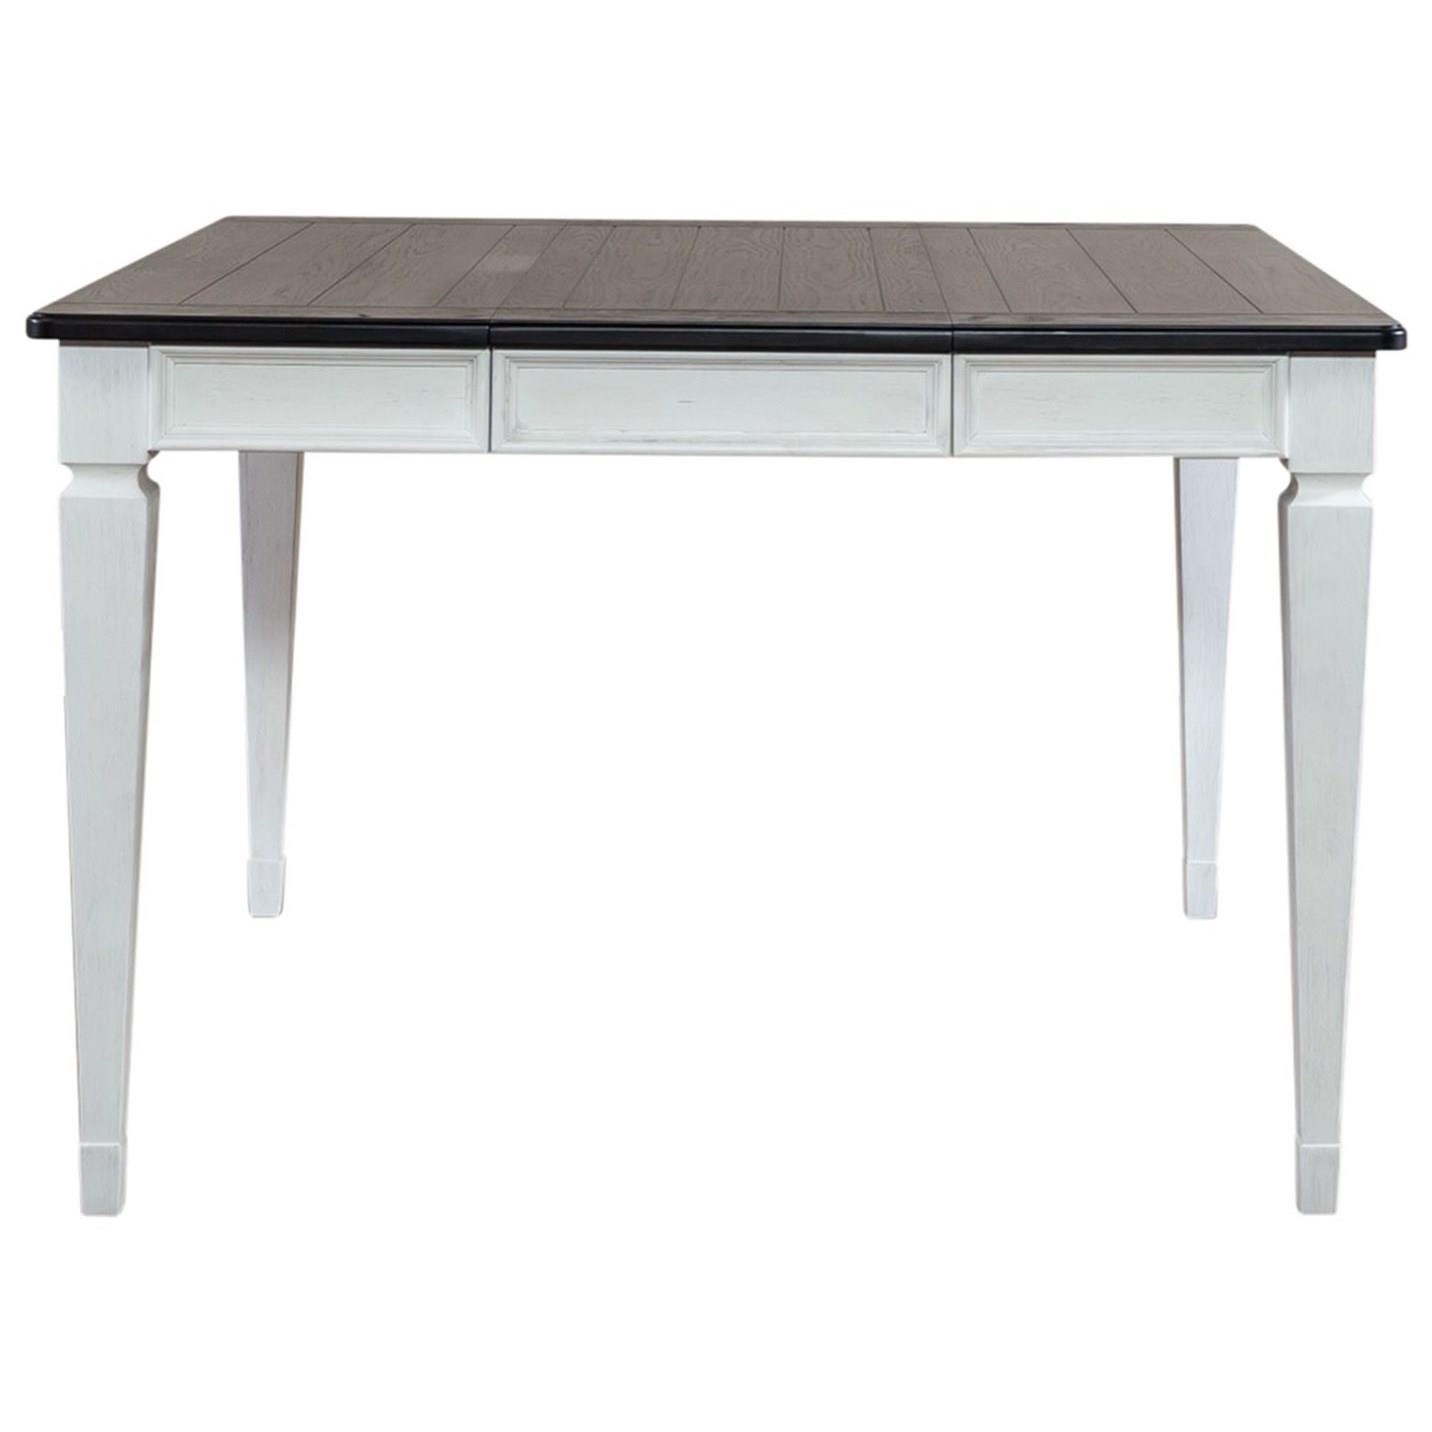 Allyson Park Counter Height Leg Table by Liberty Furniture at Furniture and ApplianceMart